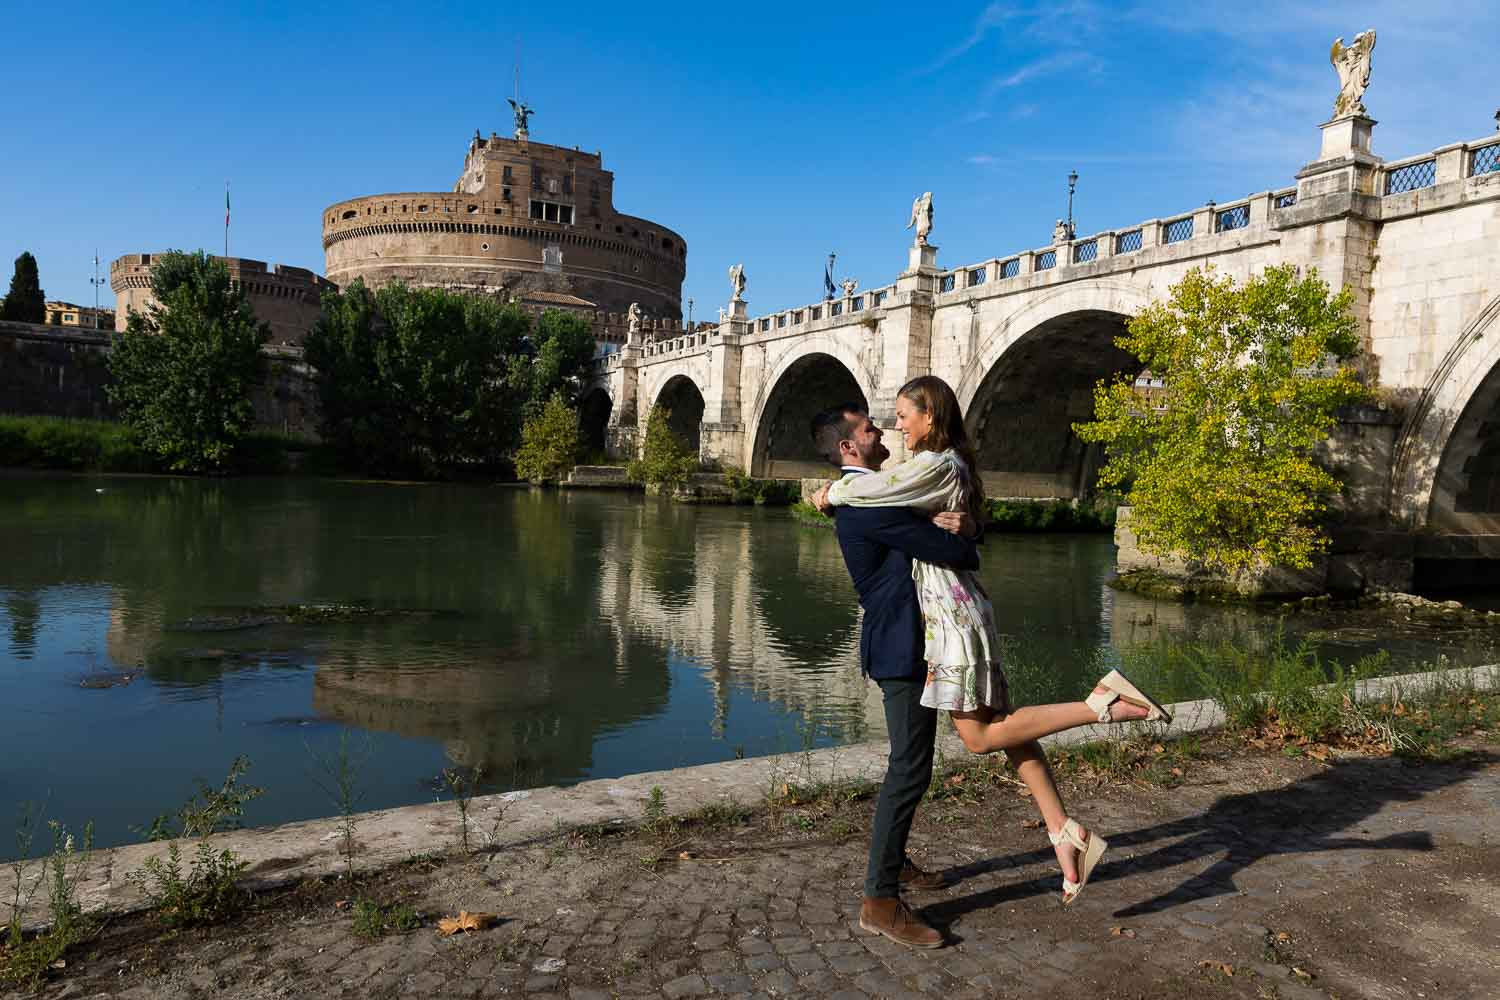 Jumping for joy at the Castel Sant'Angelo bridge next to the Tiber river bank